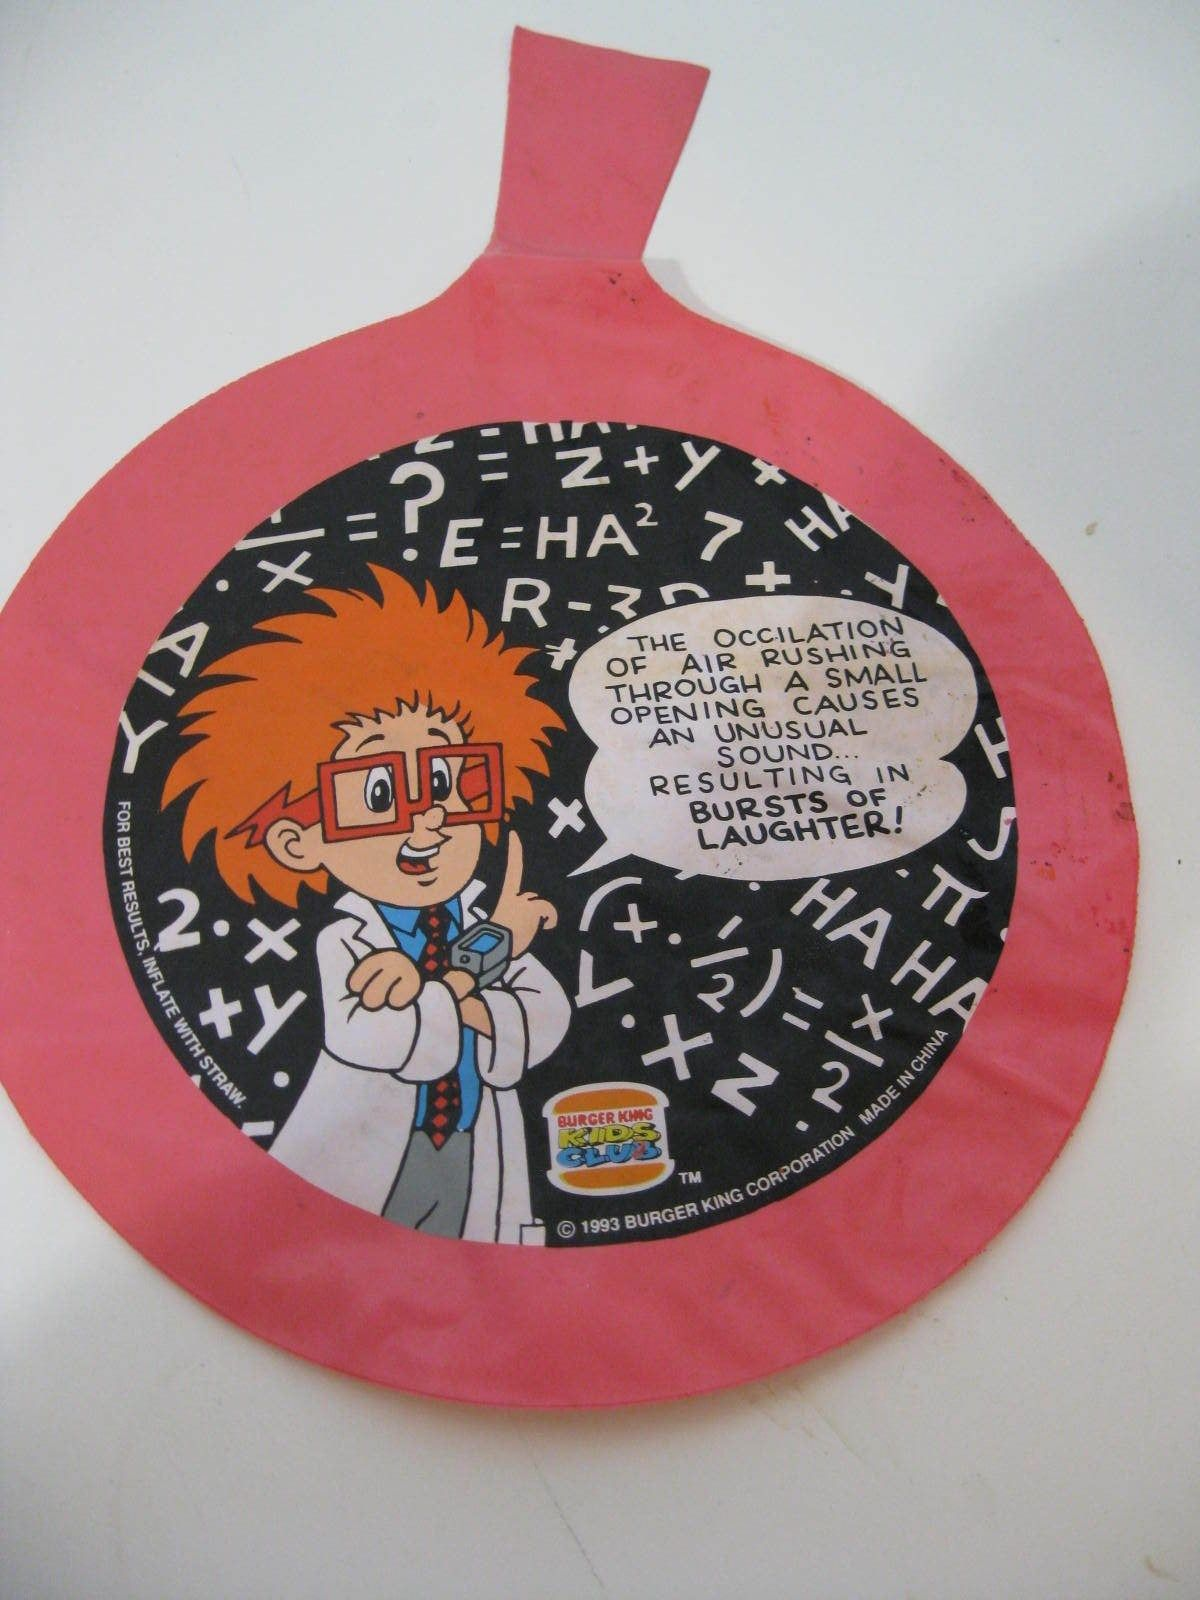 Pranks and Funny Pages (Burger King, 1993)